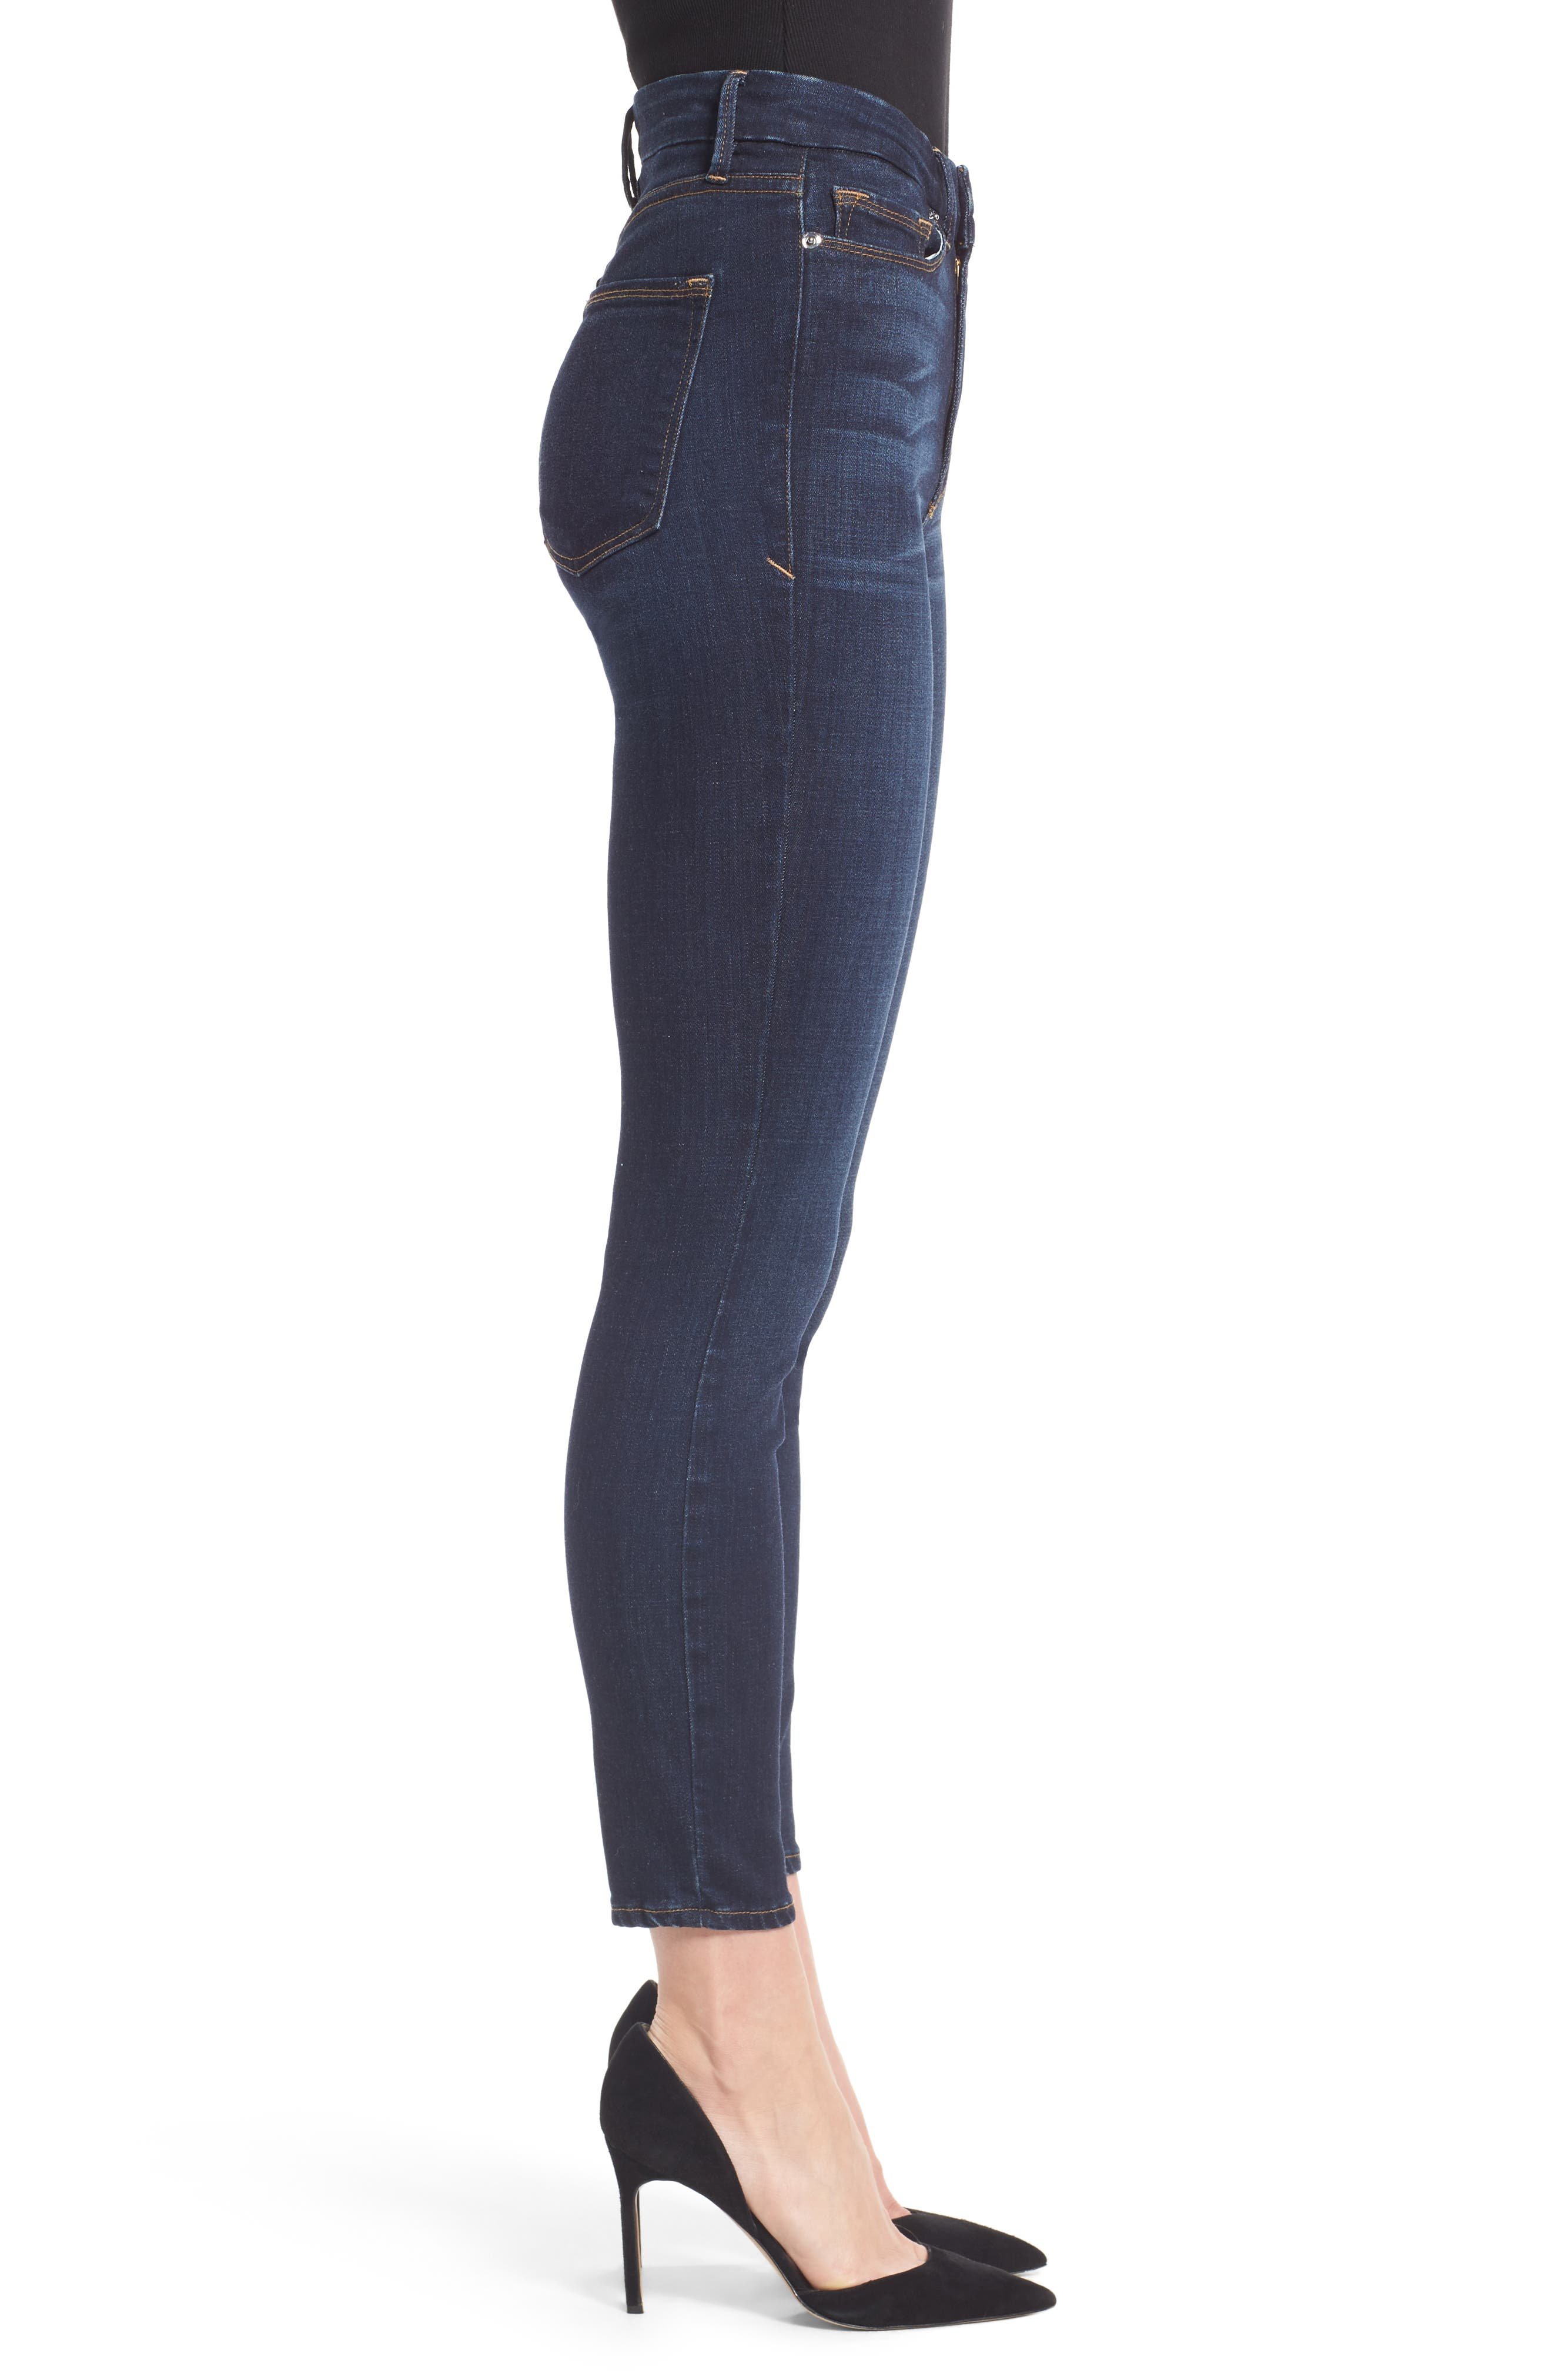 Alternate Image 3  - Good American Good Legs High Waist Ankle Skinny Jeans (Extended Sizes)